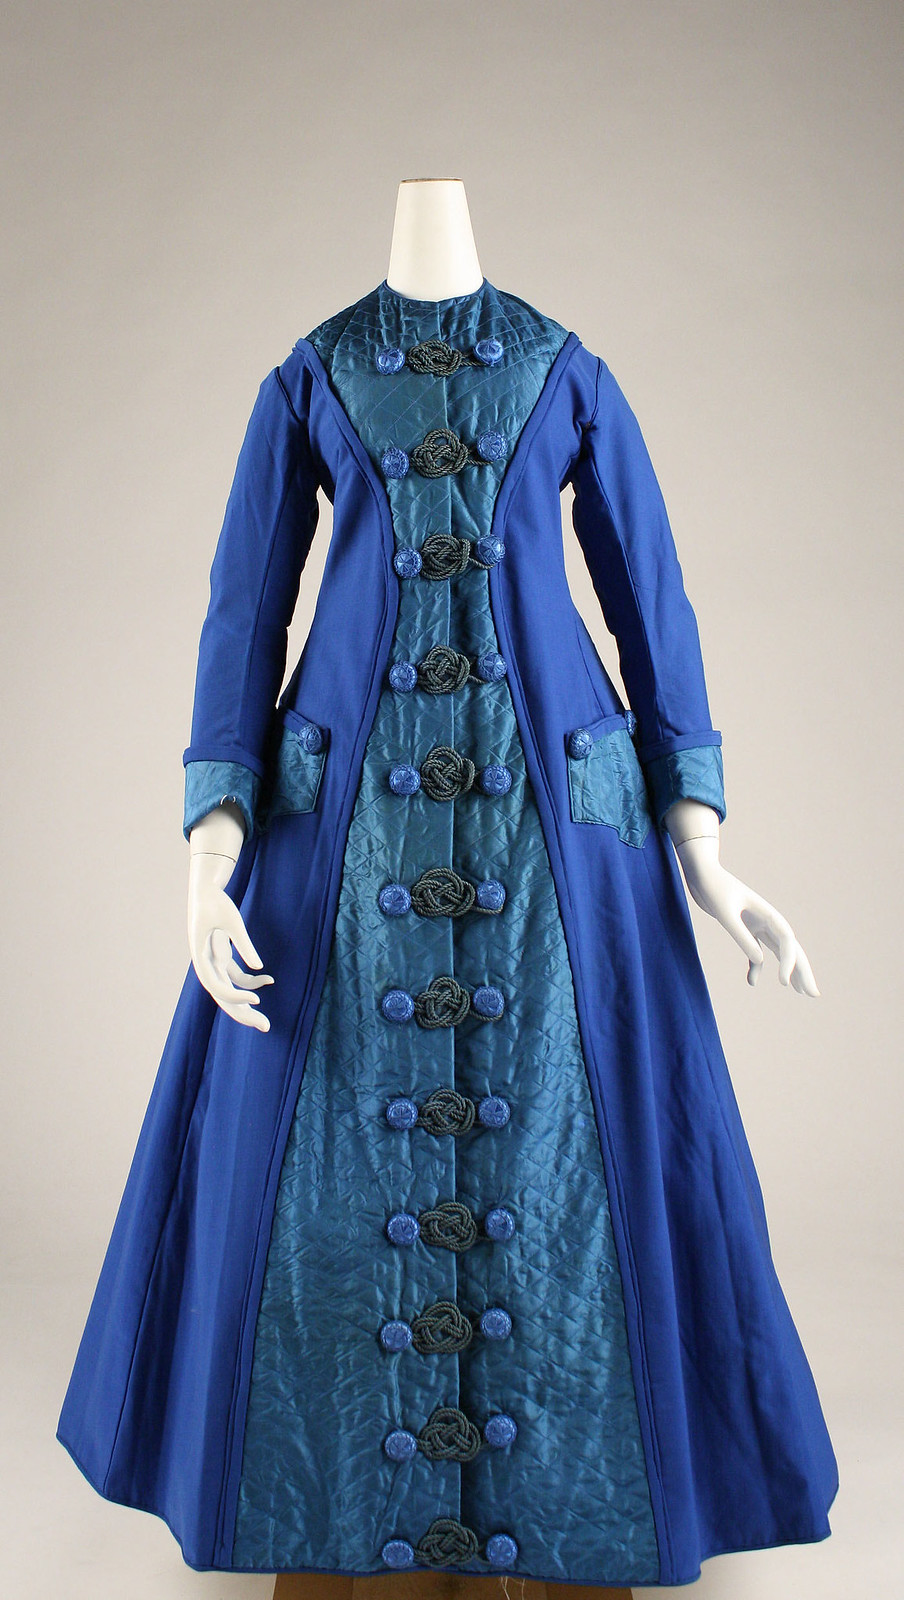 Dressing gown, c.1872, American, Silk, wool, cotton, metmuseum